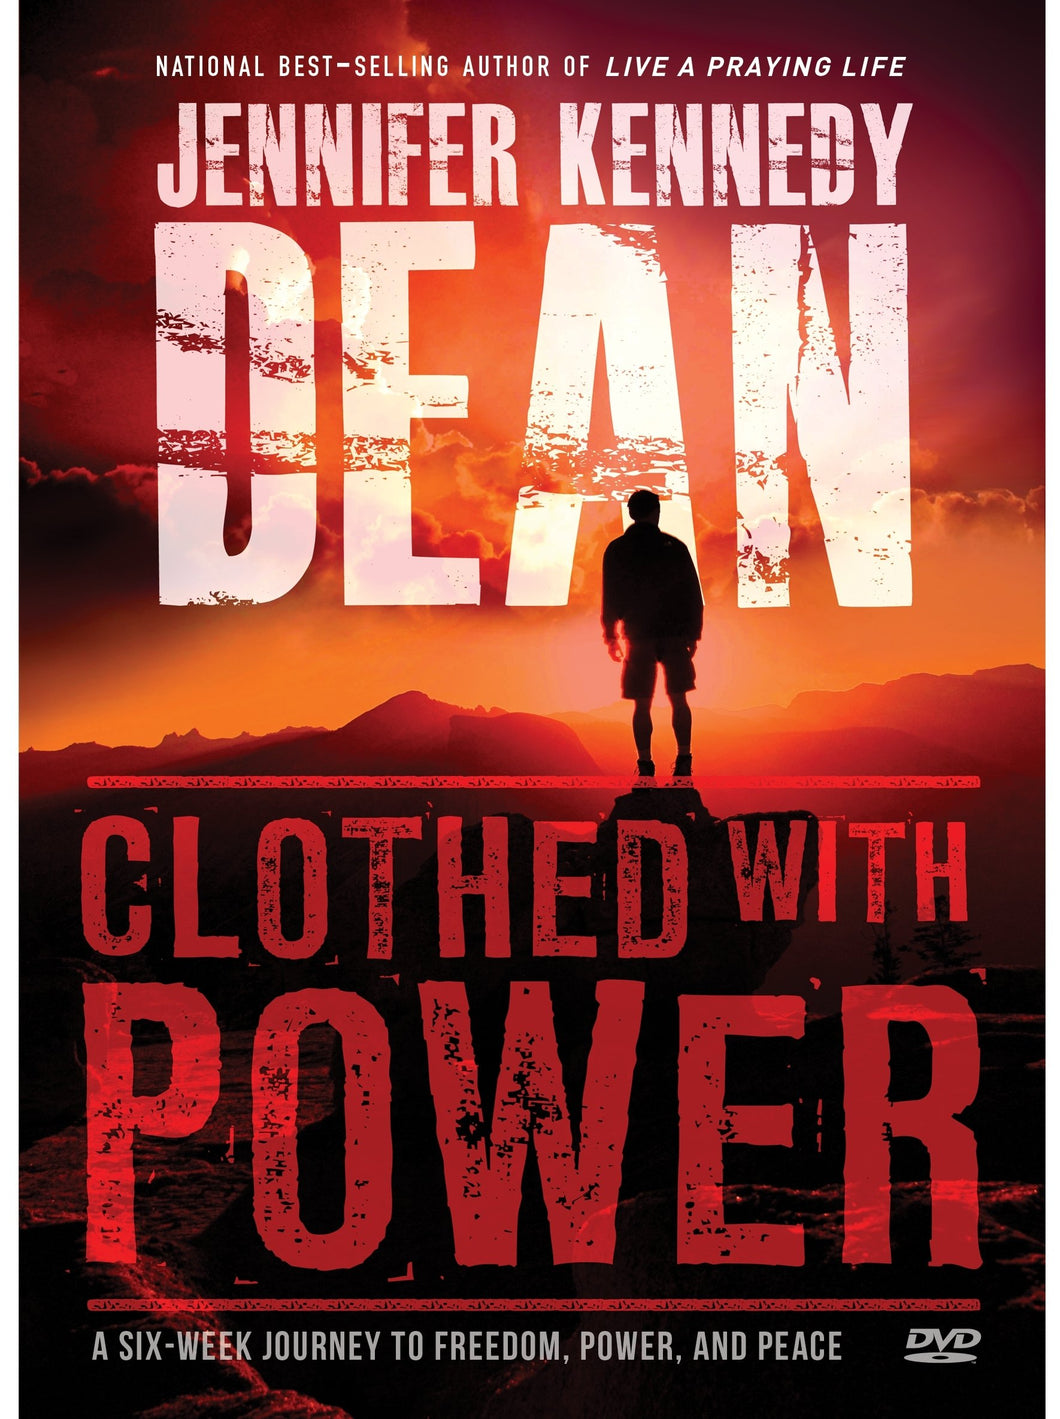 Clothed with Power DVD: A Six-Week Journey to Freedom, Hope, and Peace